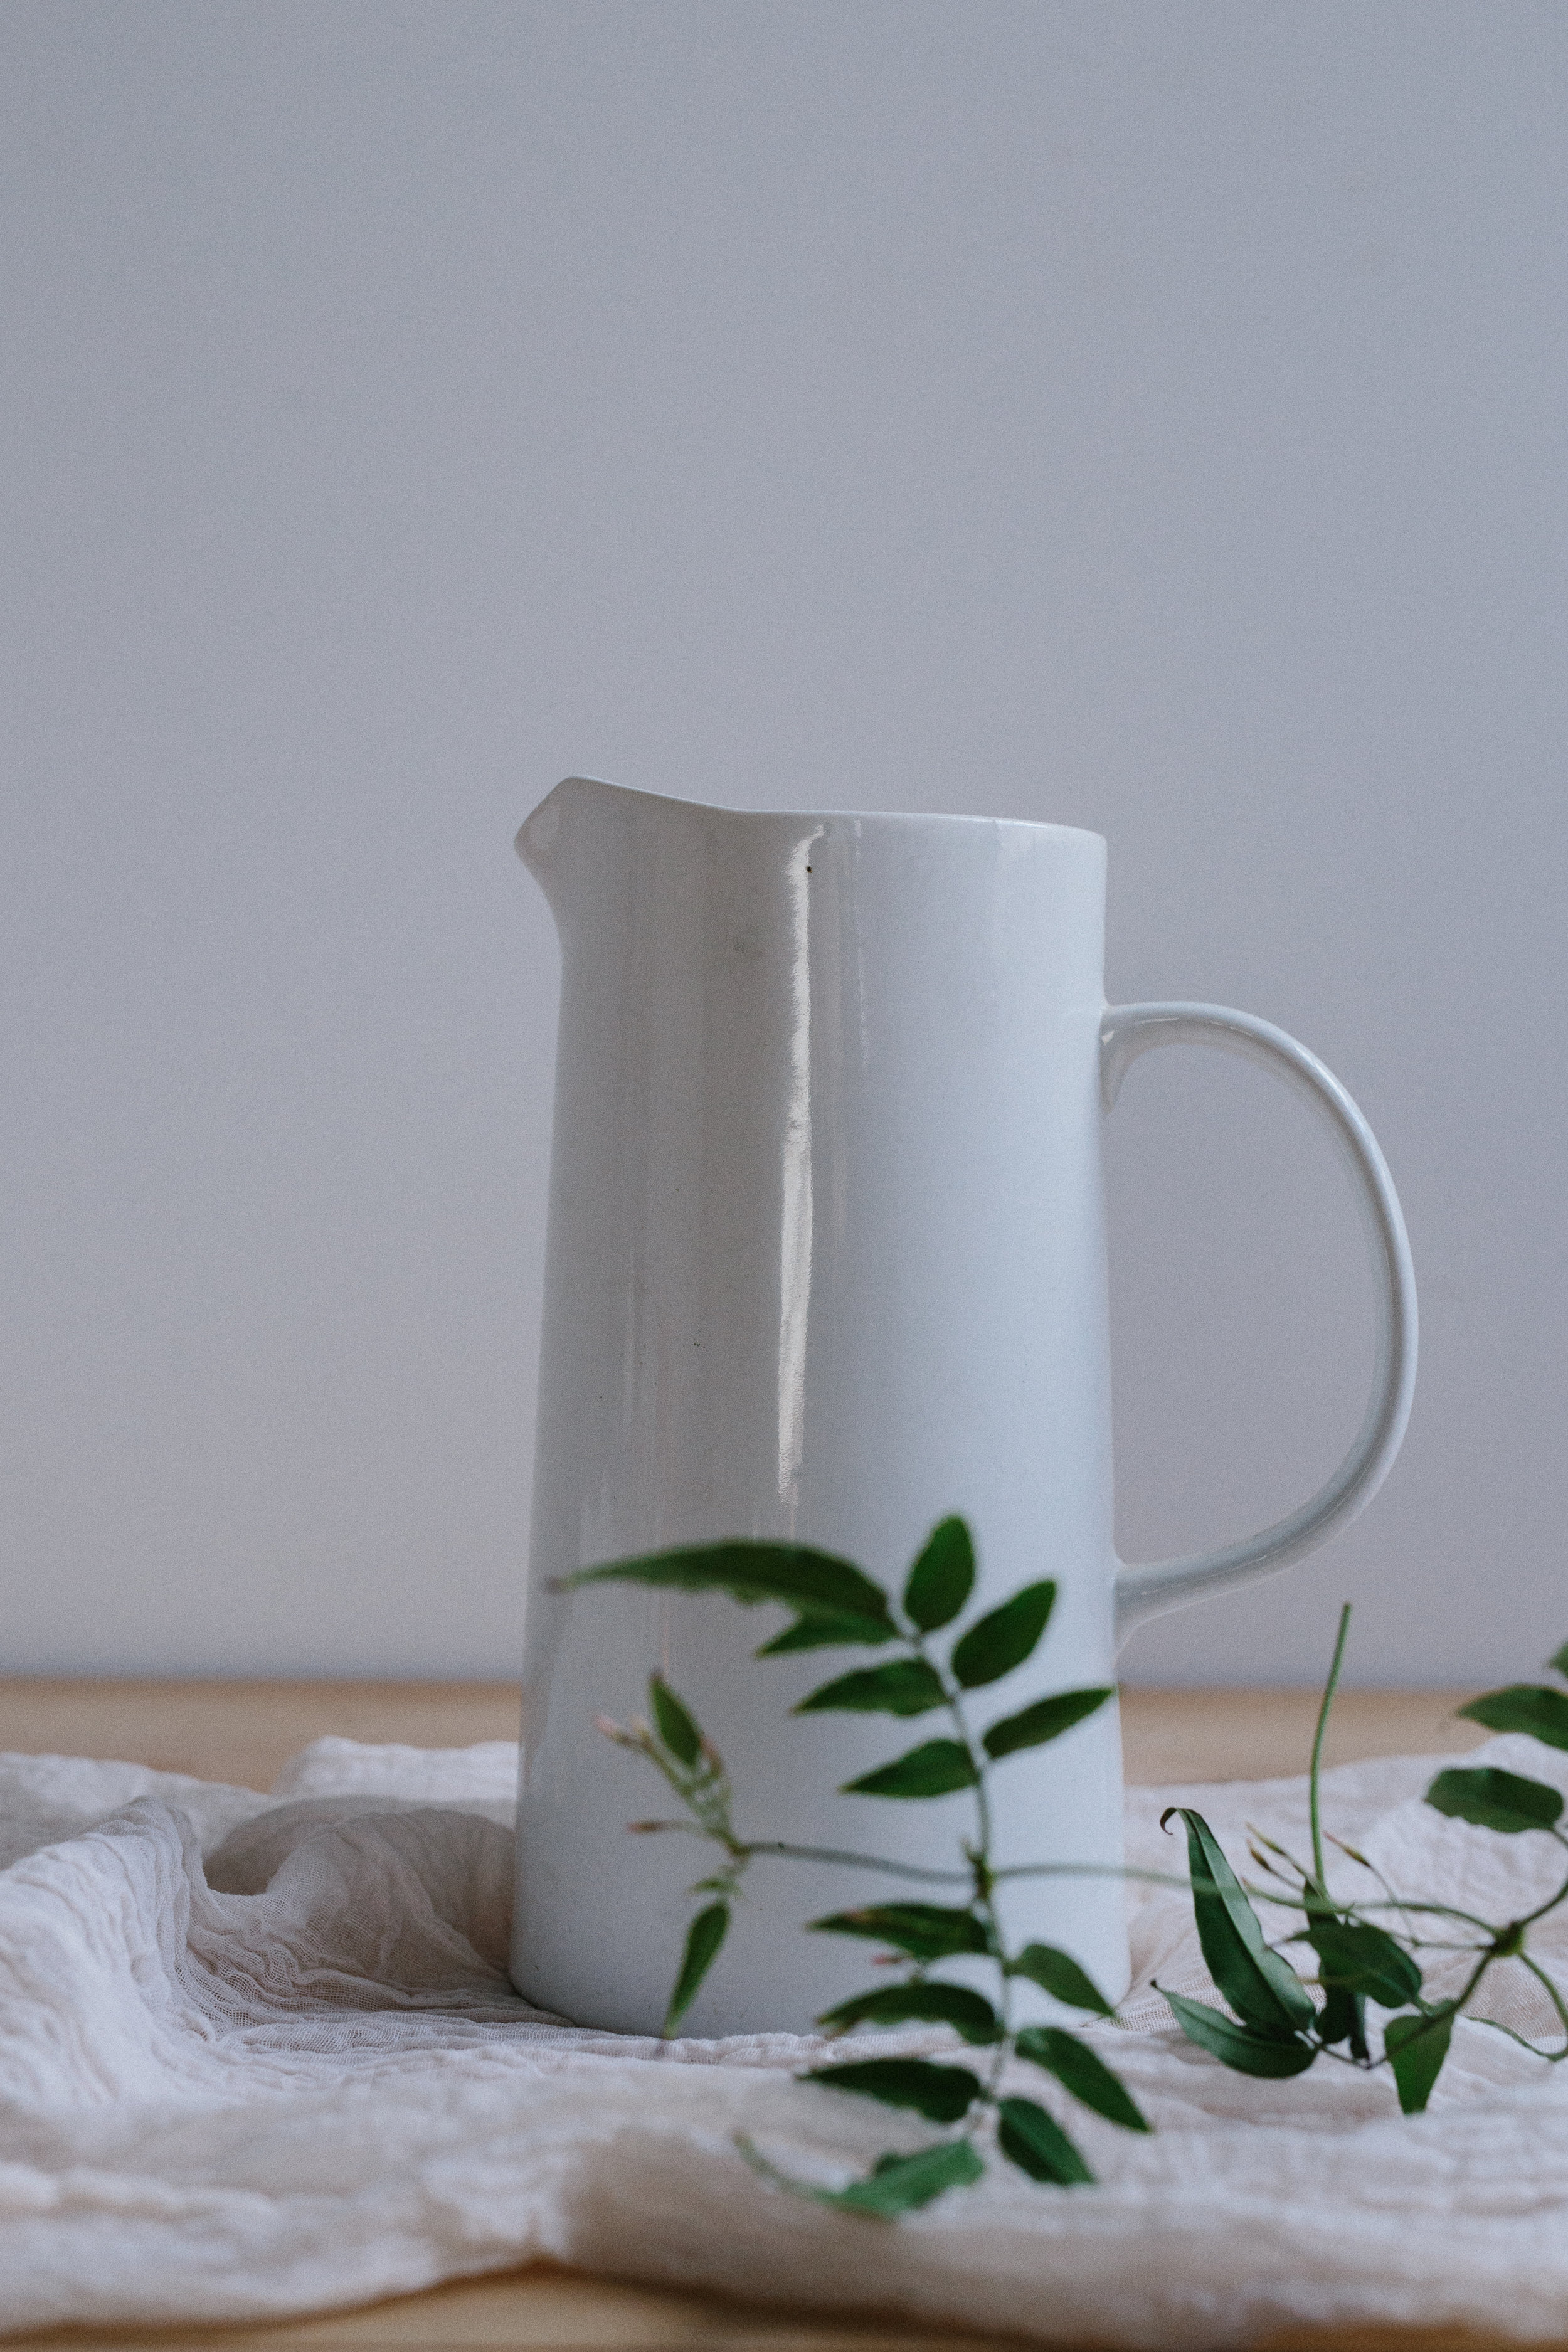 LARGE WHITE CERAMIC PITCHER // $8